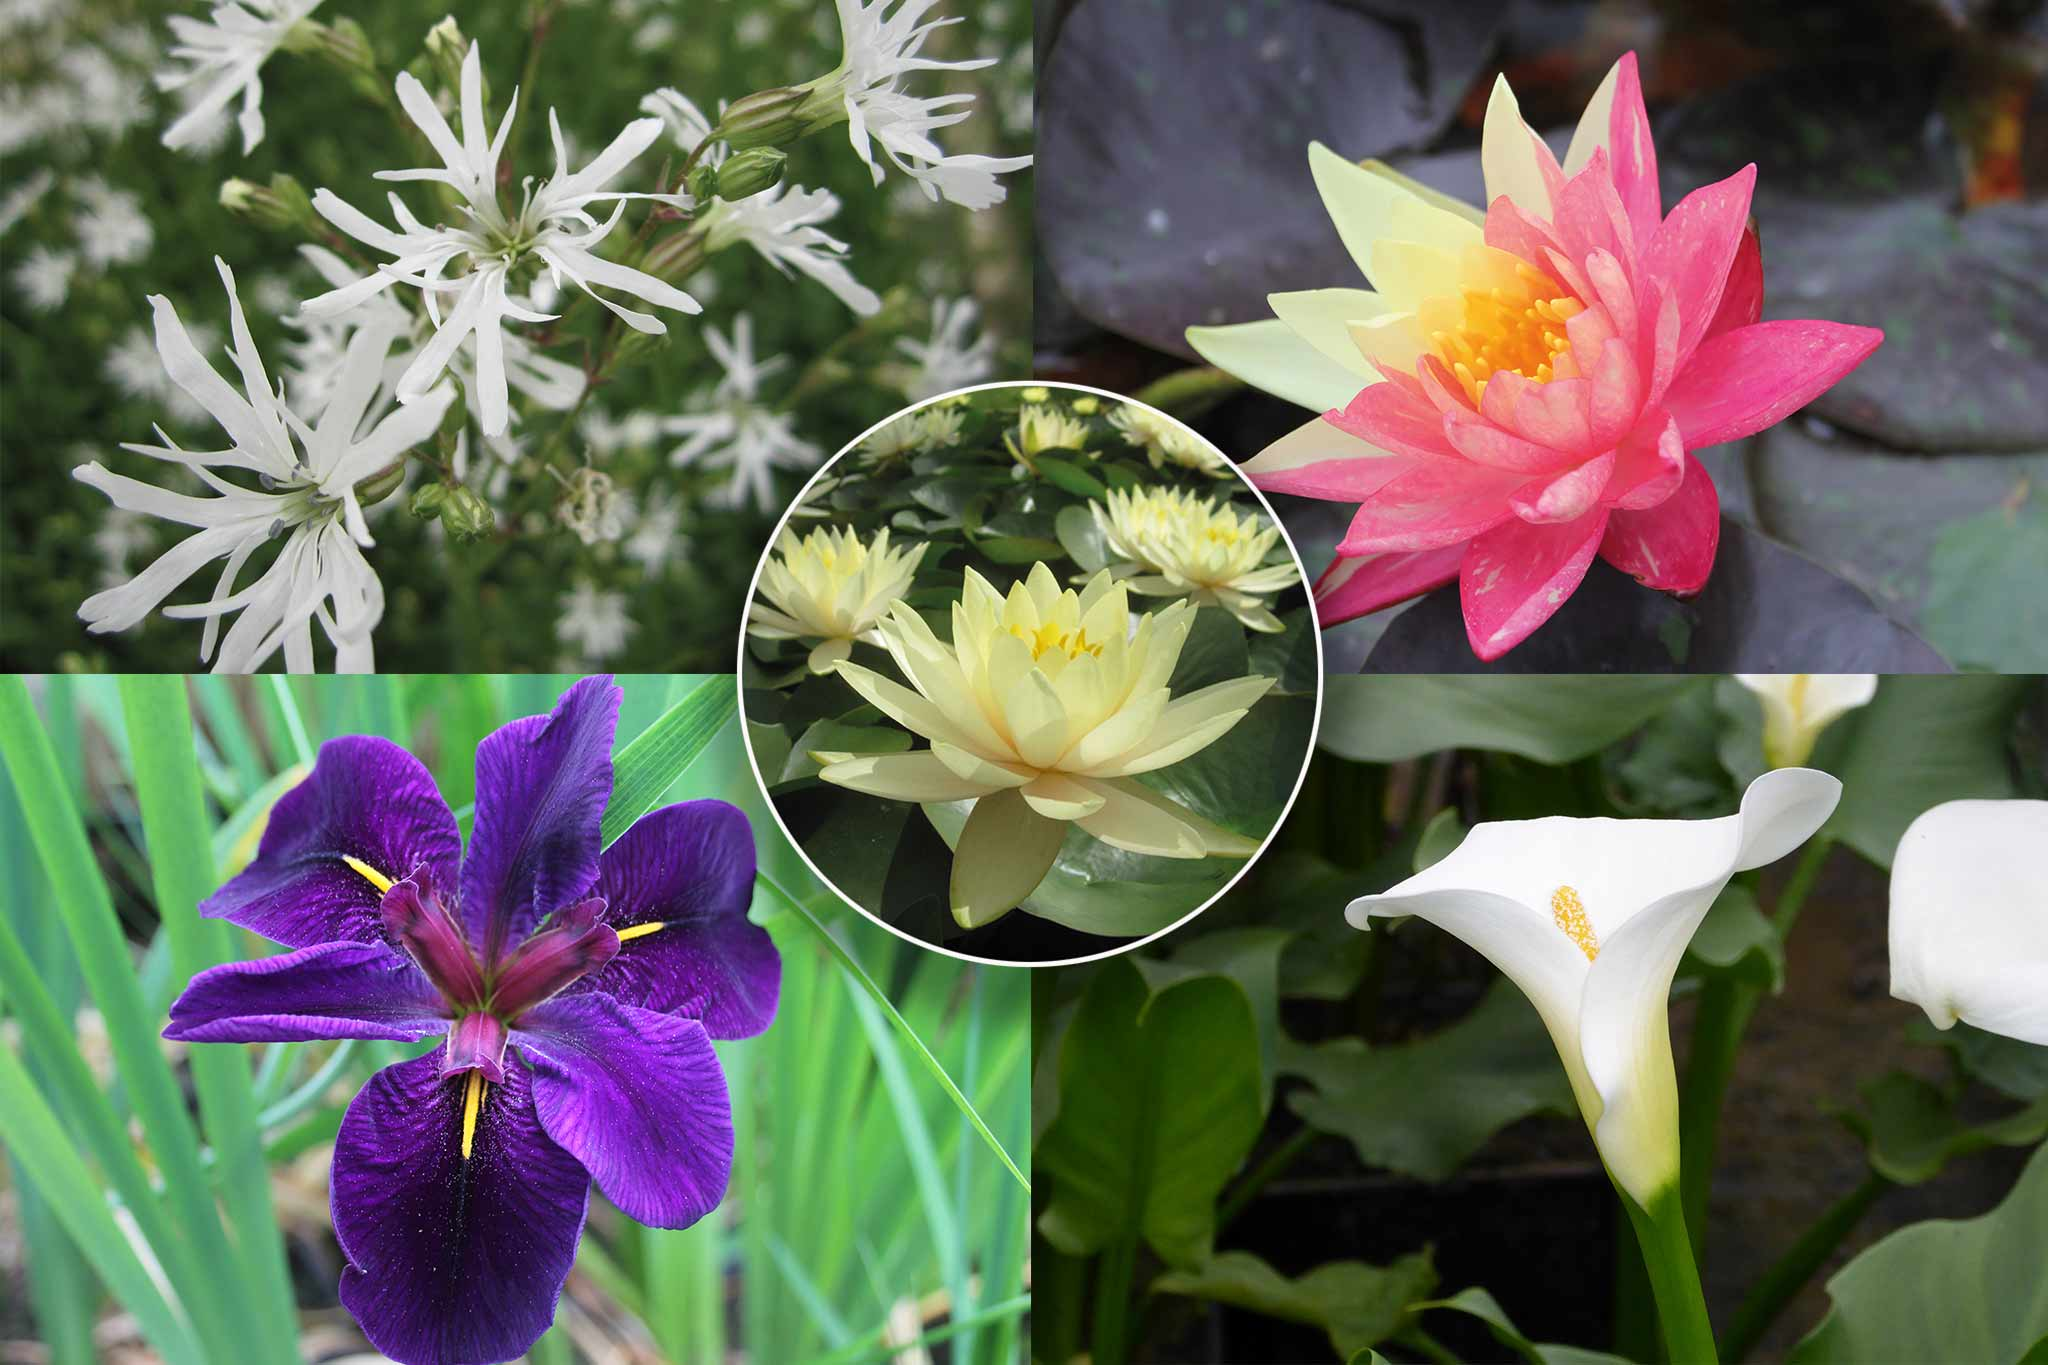 15% off pond plants